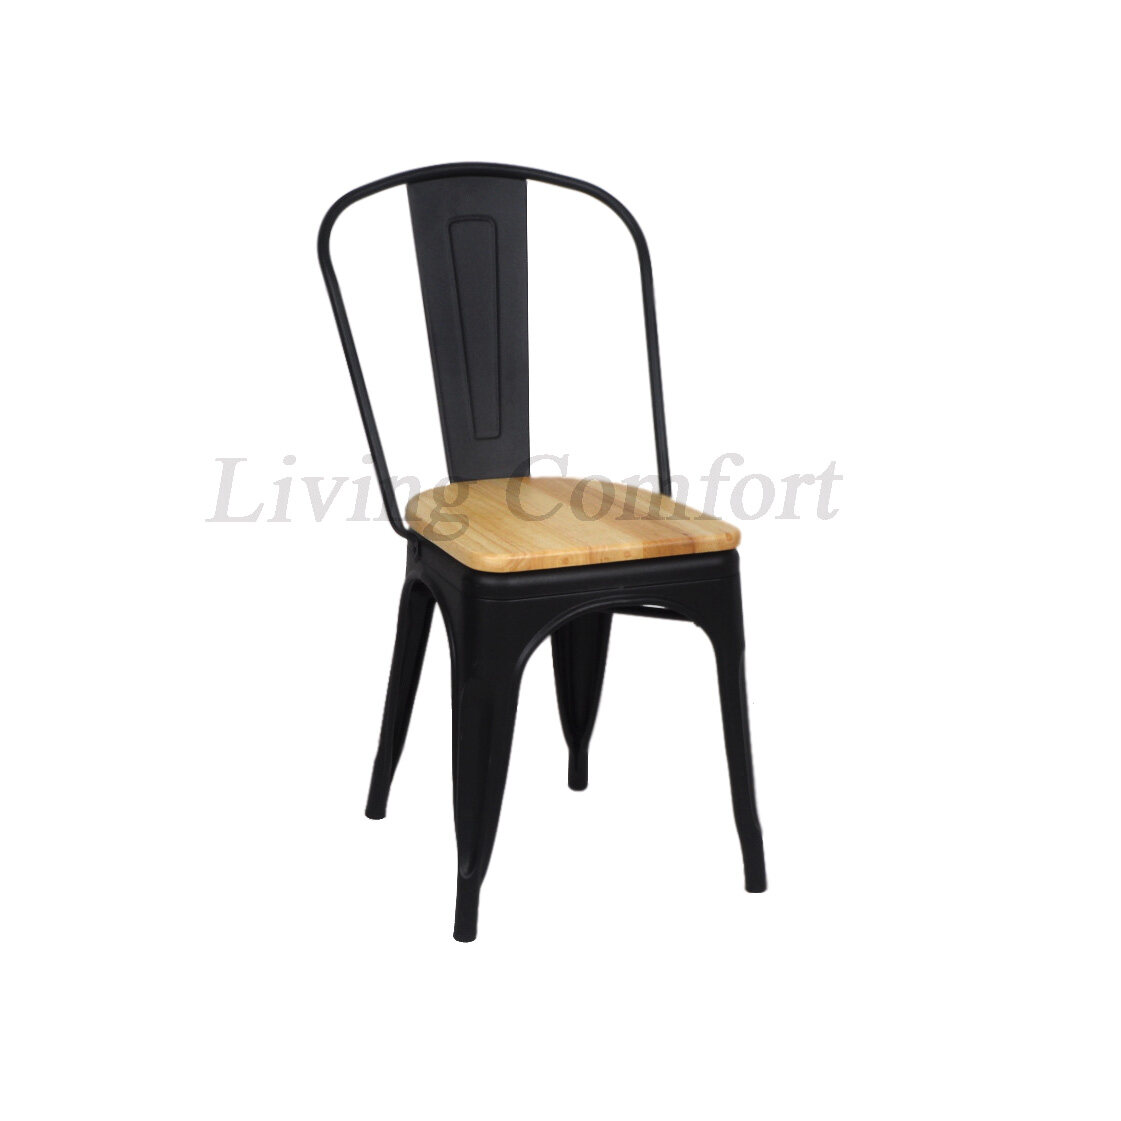 TOLIX METAL DINING / RESTAURANT / CAFE / SIDE CHAIR with wooden seat (SET  OF 6)